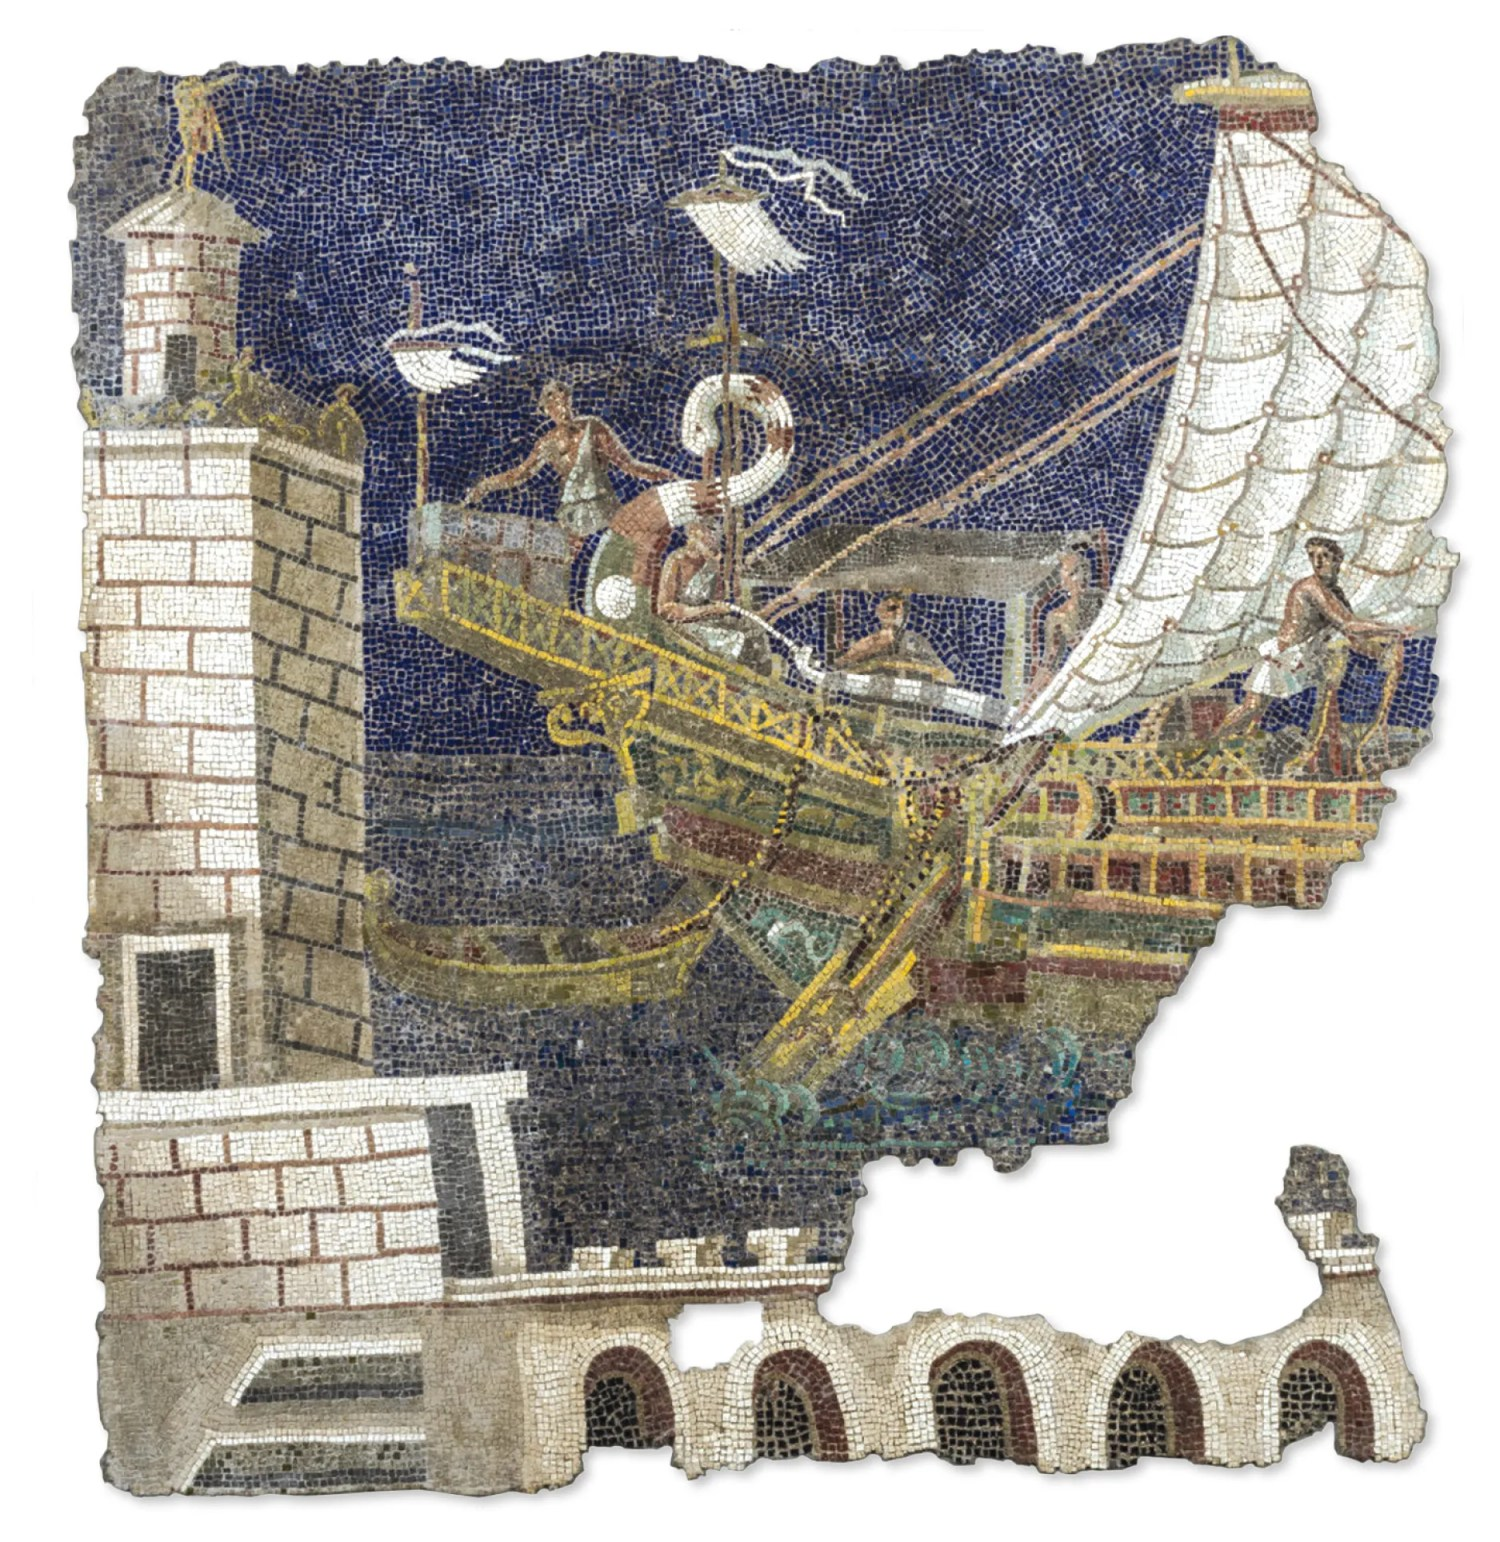 OPPOSITE Polychrome wall mosaic showing a harbour and ship, found in the garden of Palazzo Rospigliosi-Pallavicini in 1876, during construction work on Rome's Via Nazionale. Late 2nd / early 3rd century